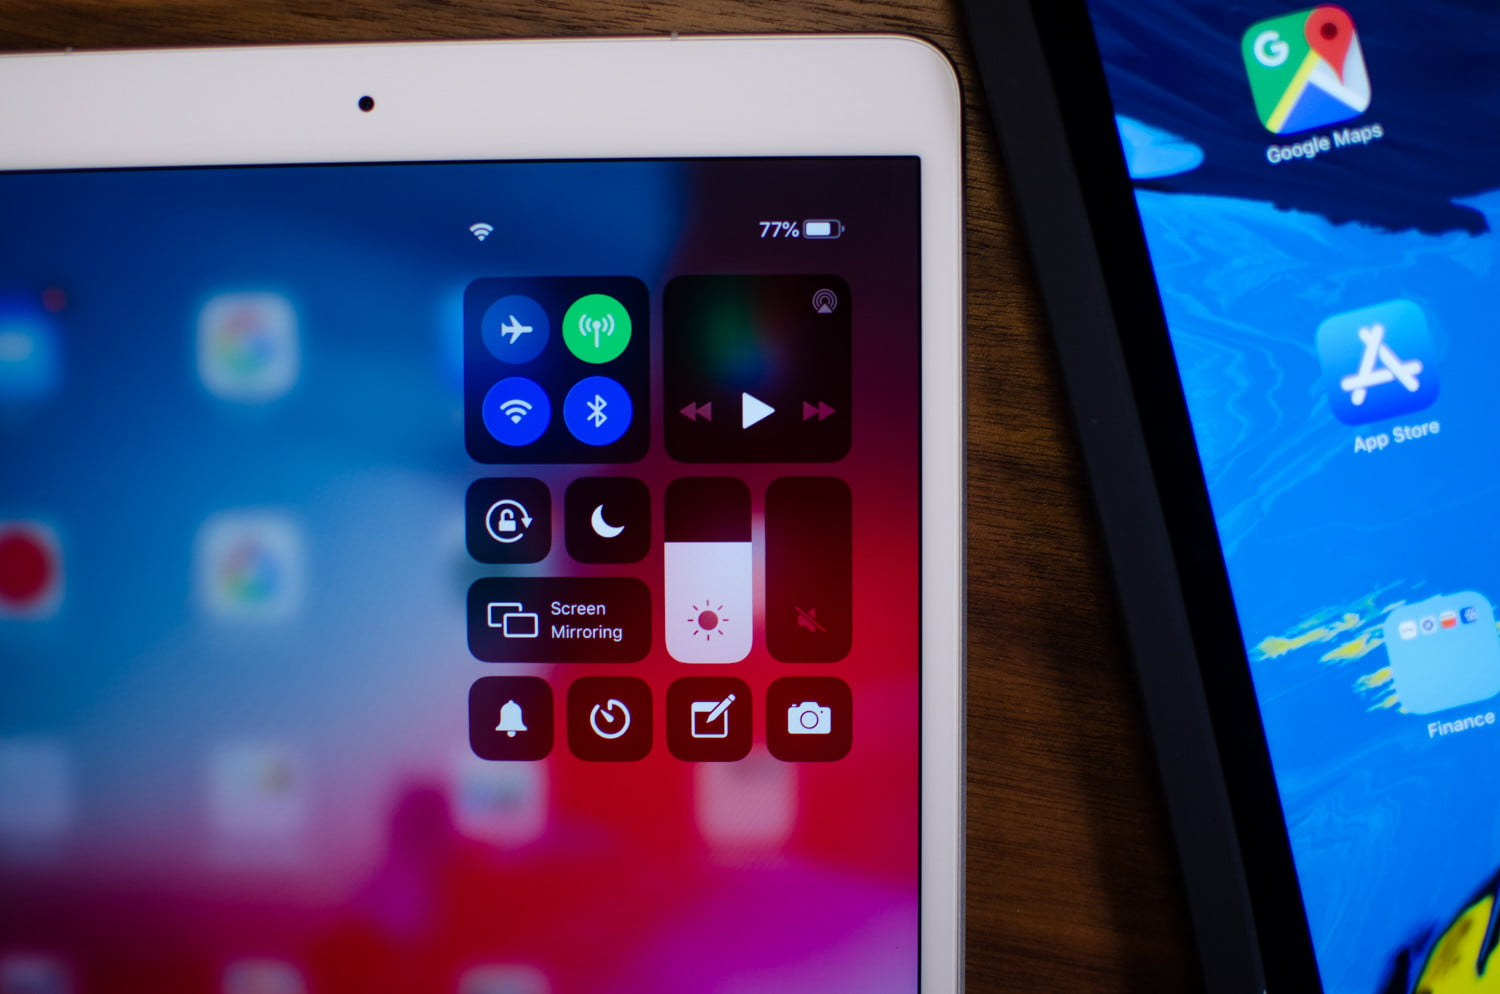 Got a new iPad? Whether it's a Mini or a Pro, here are 10 key settings to change